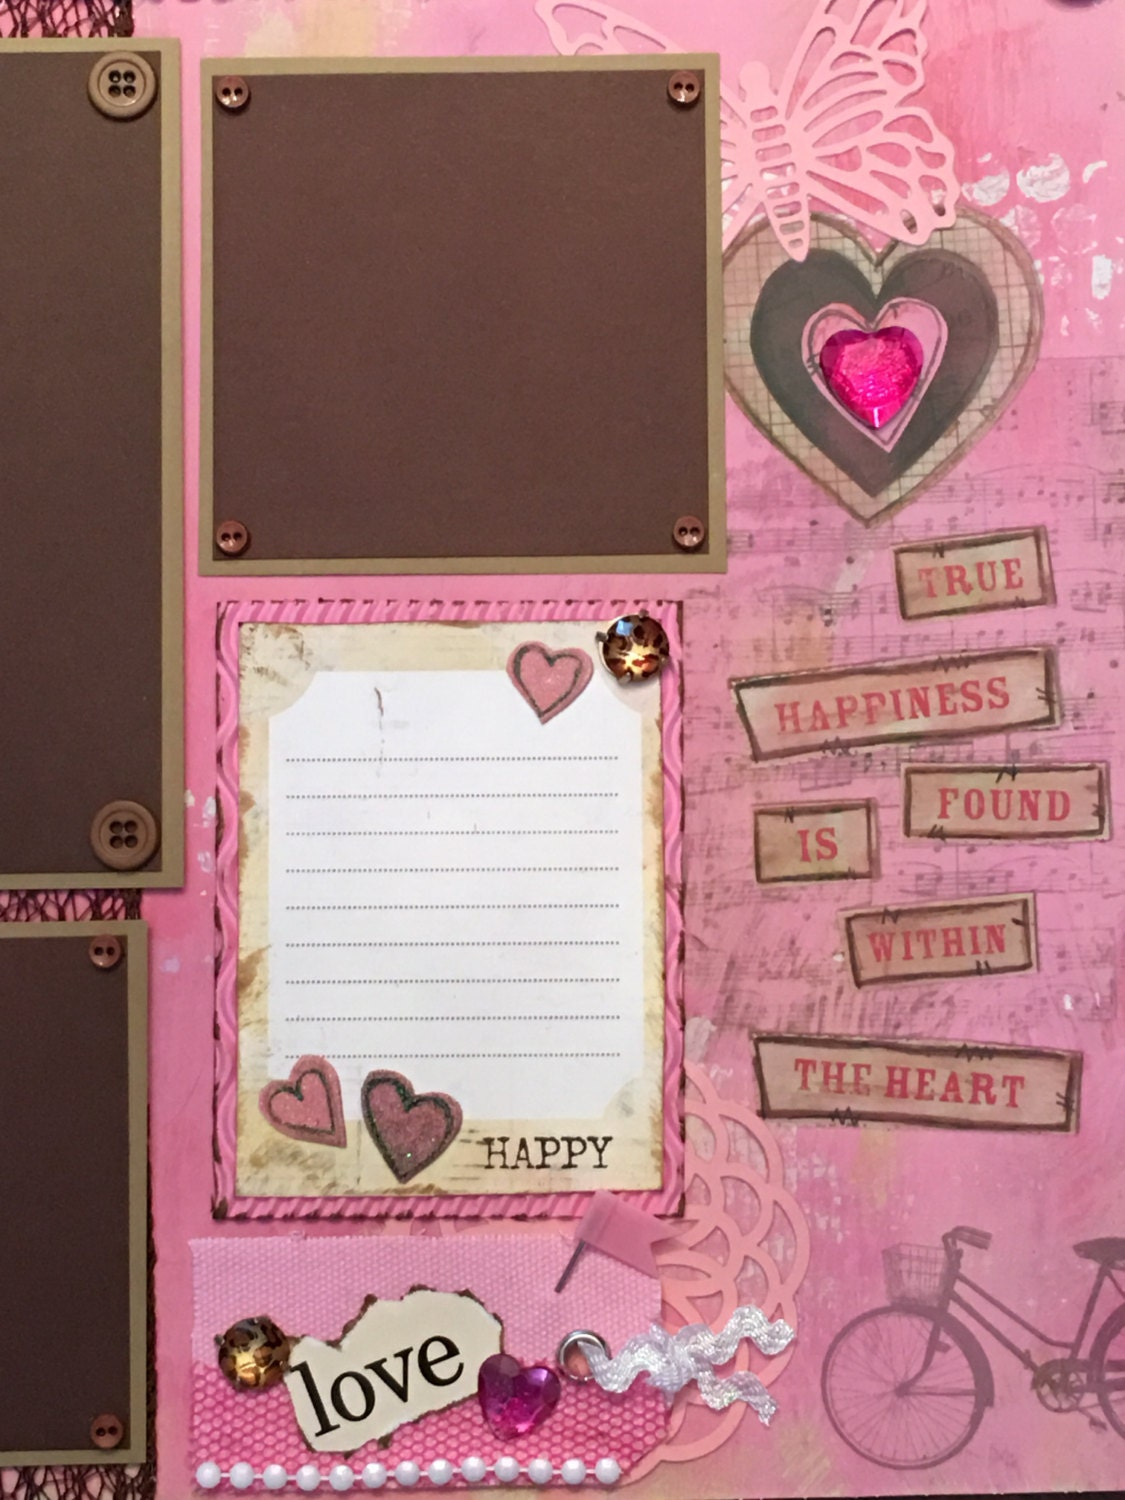 12 Quot X 12 Quot Premade Scrapbook Page Scrapbooking Pre Made